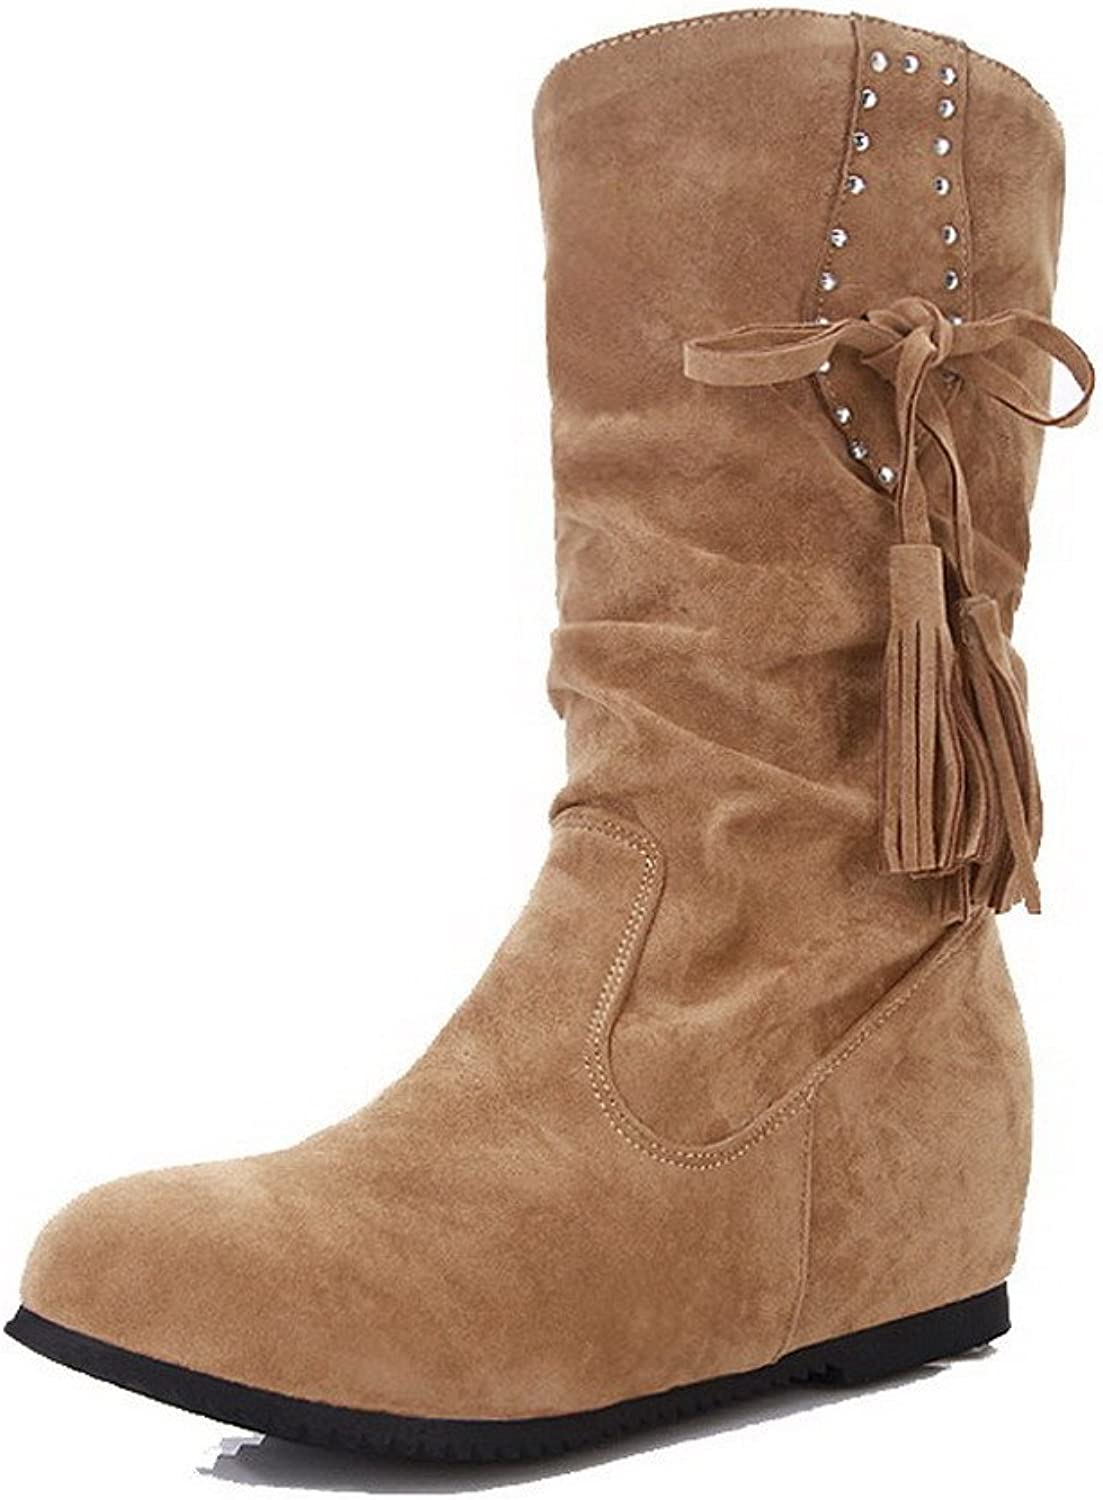 AllhqFashion Women's Frosted Pull-On Round Closed Toe Kitten-Heels Low-Top Boots